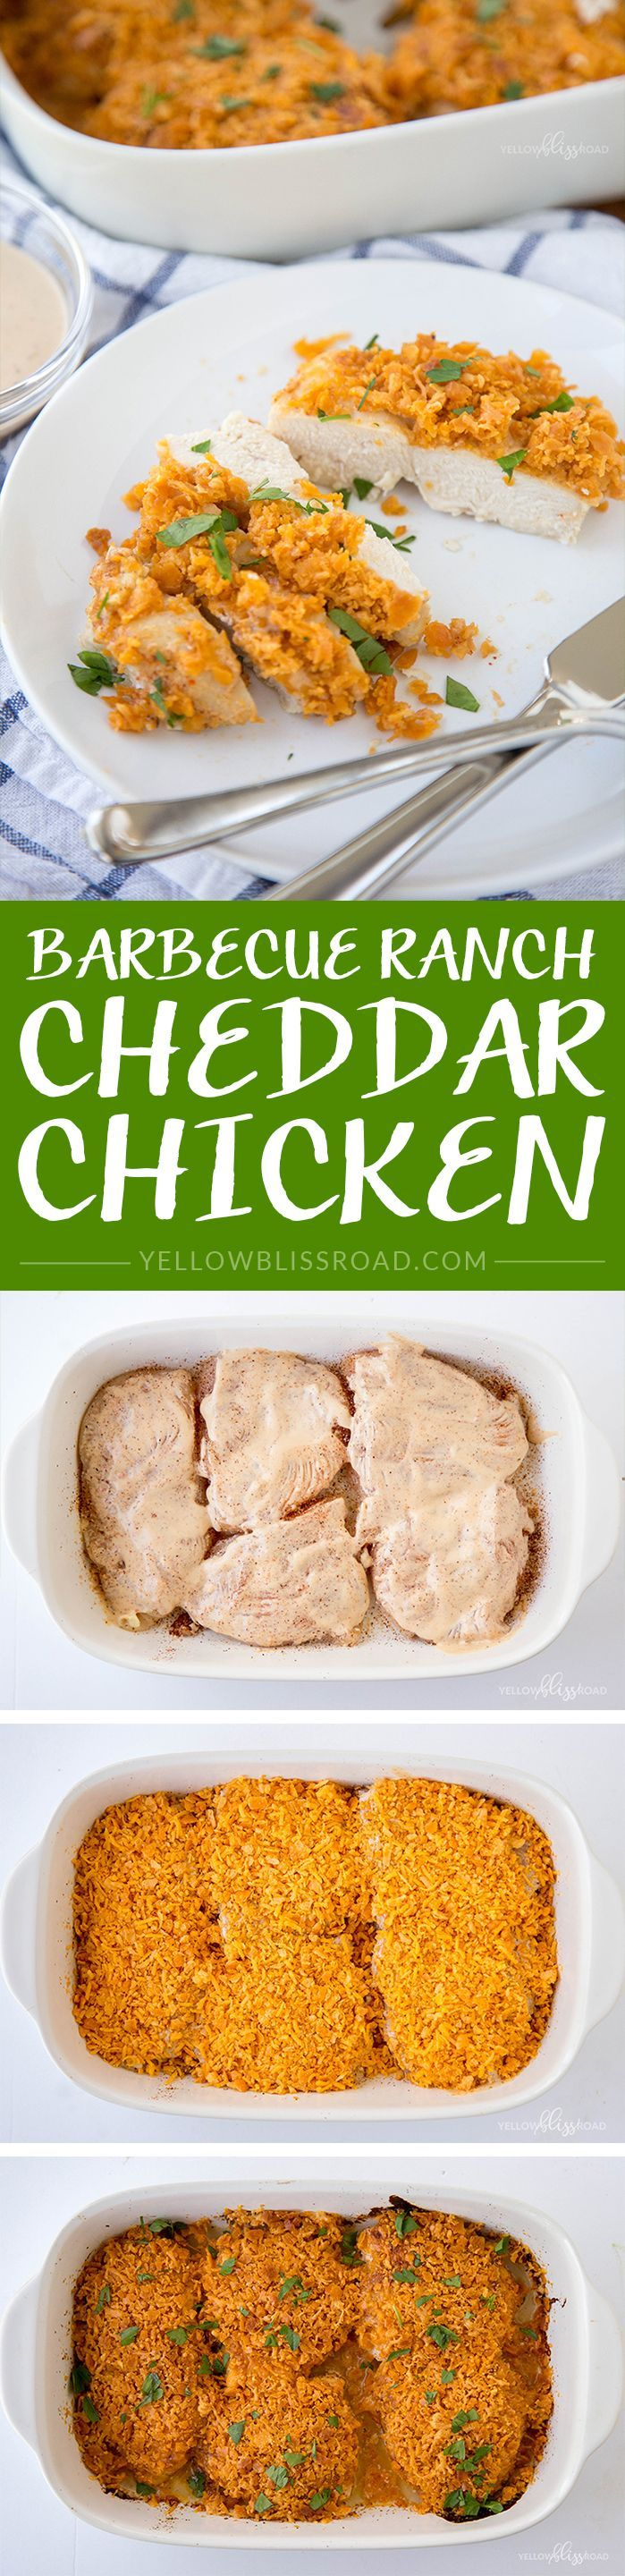 Barbecue Ranch Cheddar Baked Chicken #ad